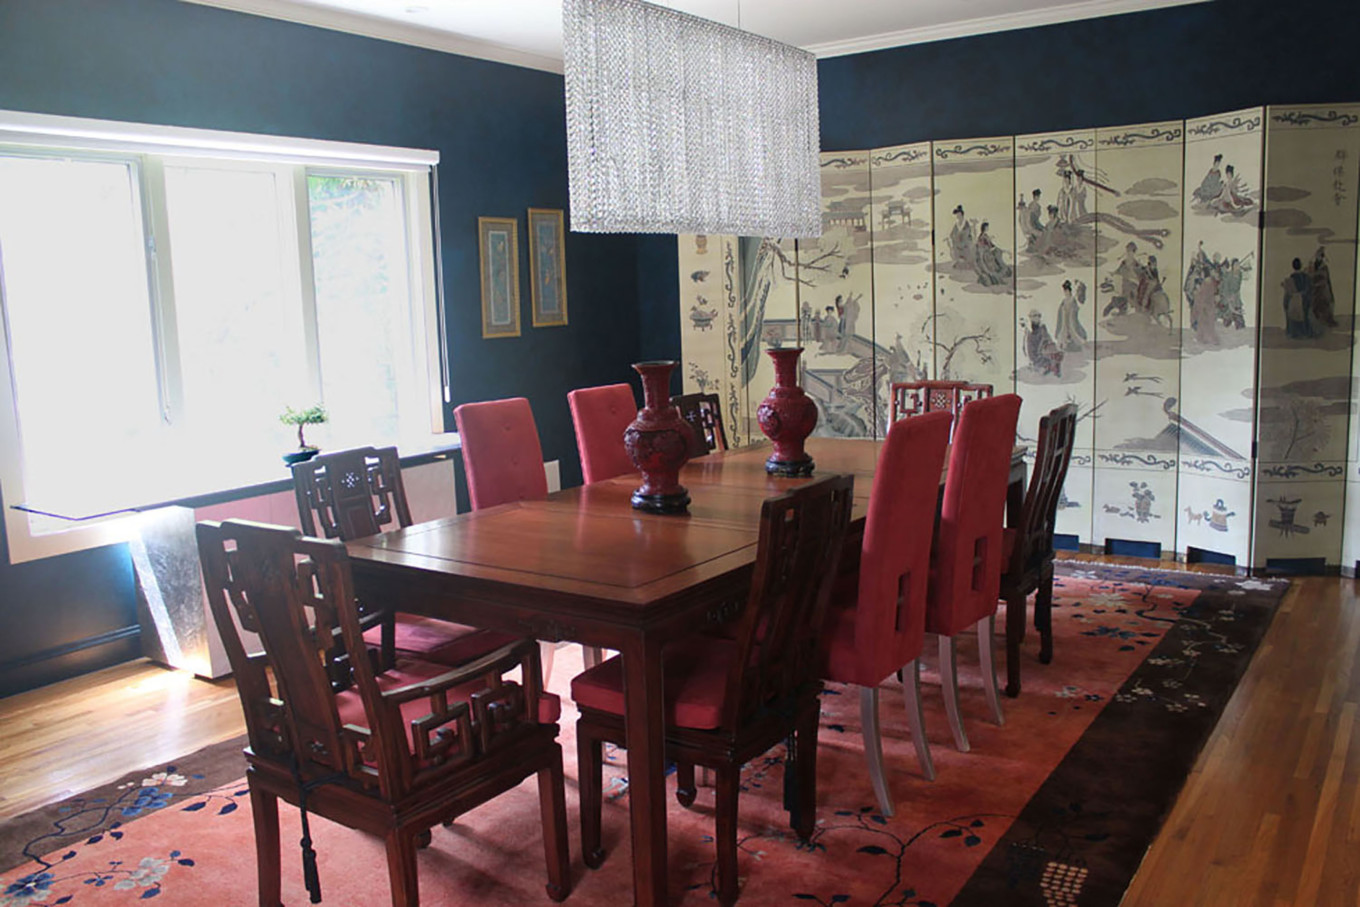 Dark Blue Walls in Dining Room